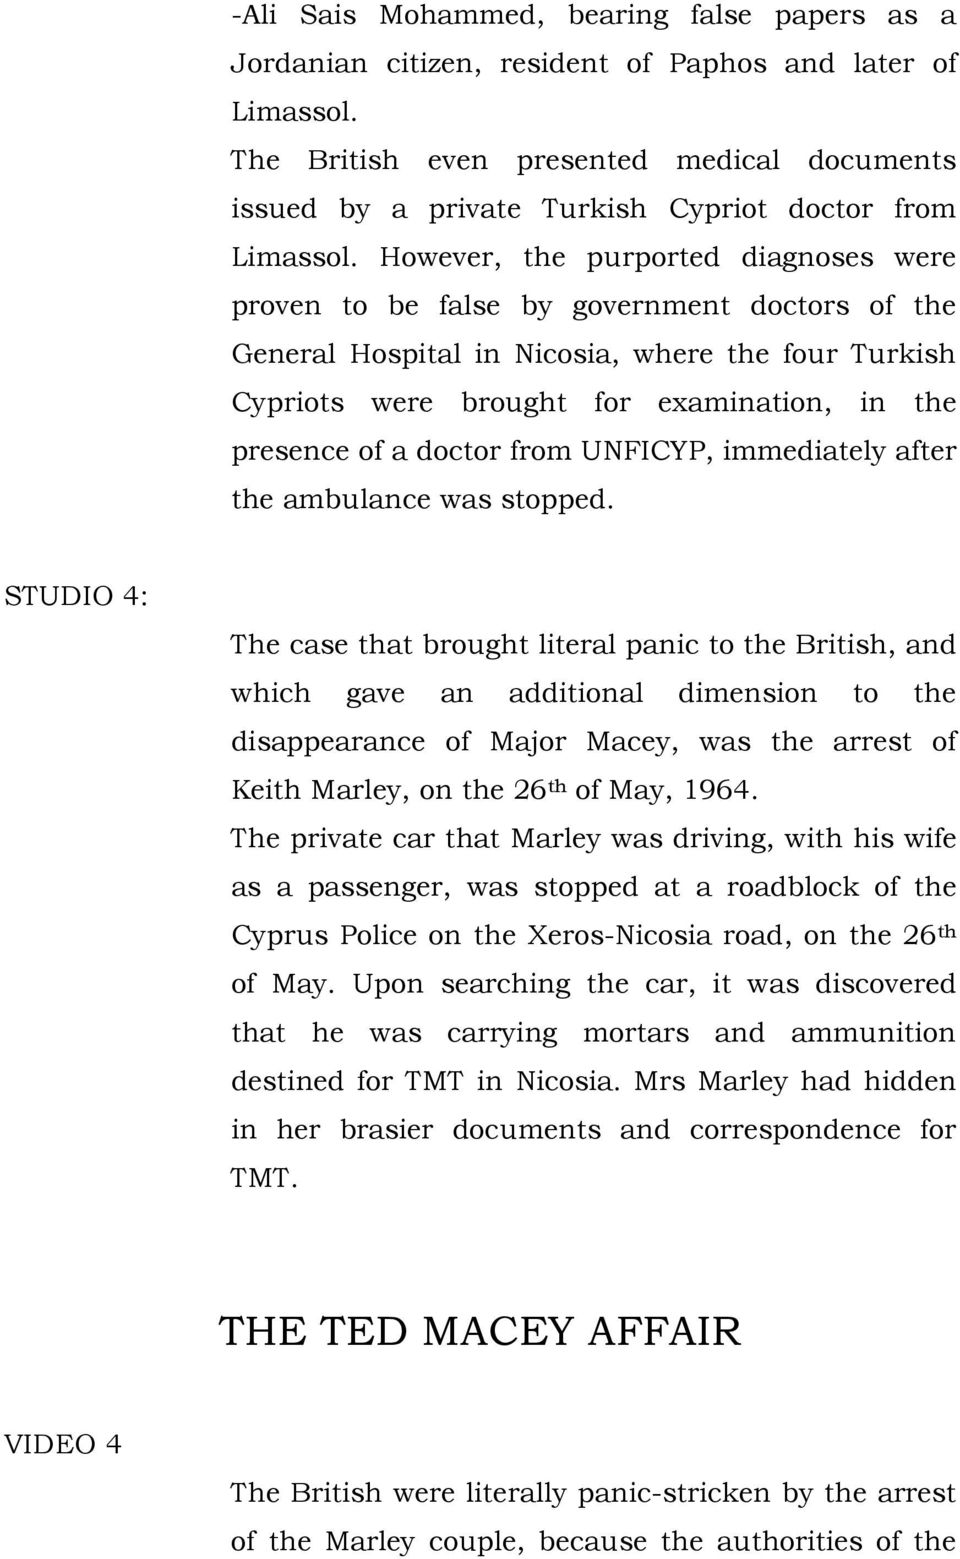 However, the purported diagnoses were proven to be false by government doctors of the General Hospital in Nicosia, where the four Turkish Cypriots were brought for examination, in the presence of a